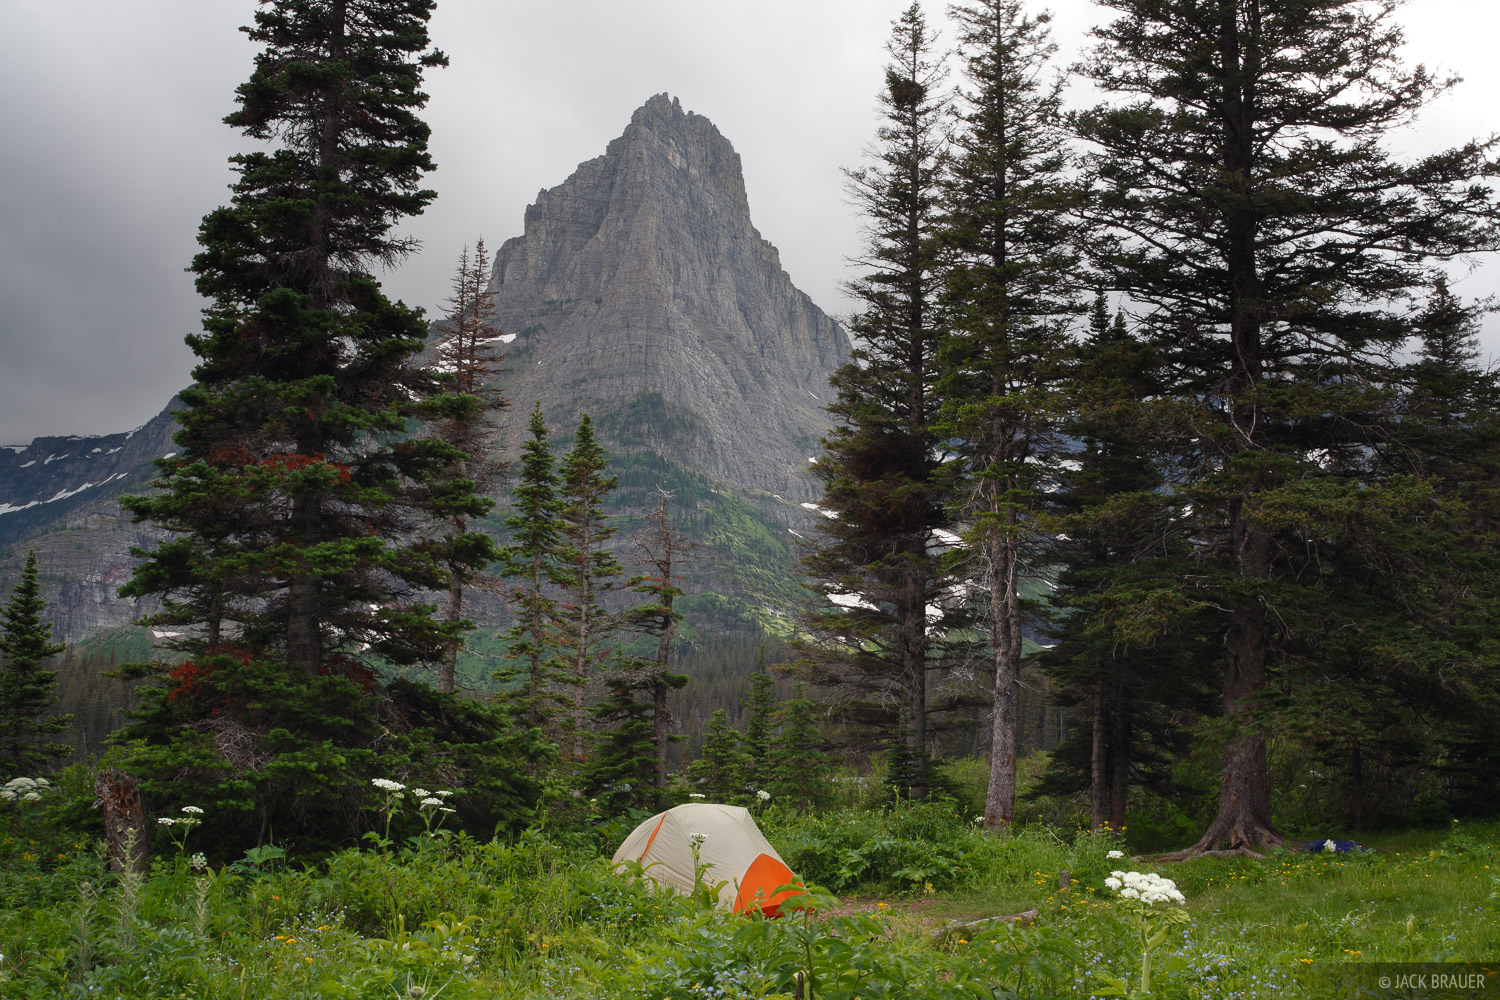 Glenns Lake, Pyramid Peak, Glacier National Park, Montana, tent, camping, photo